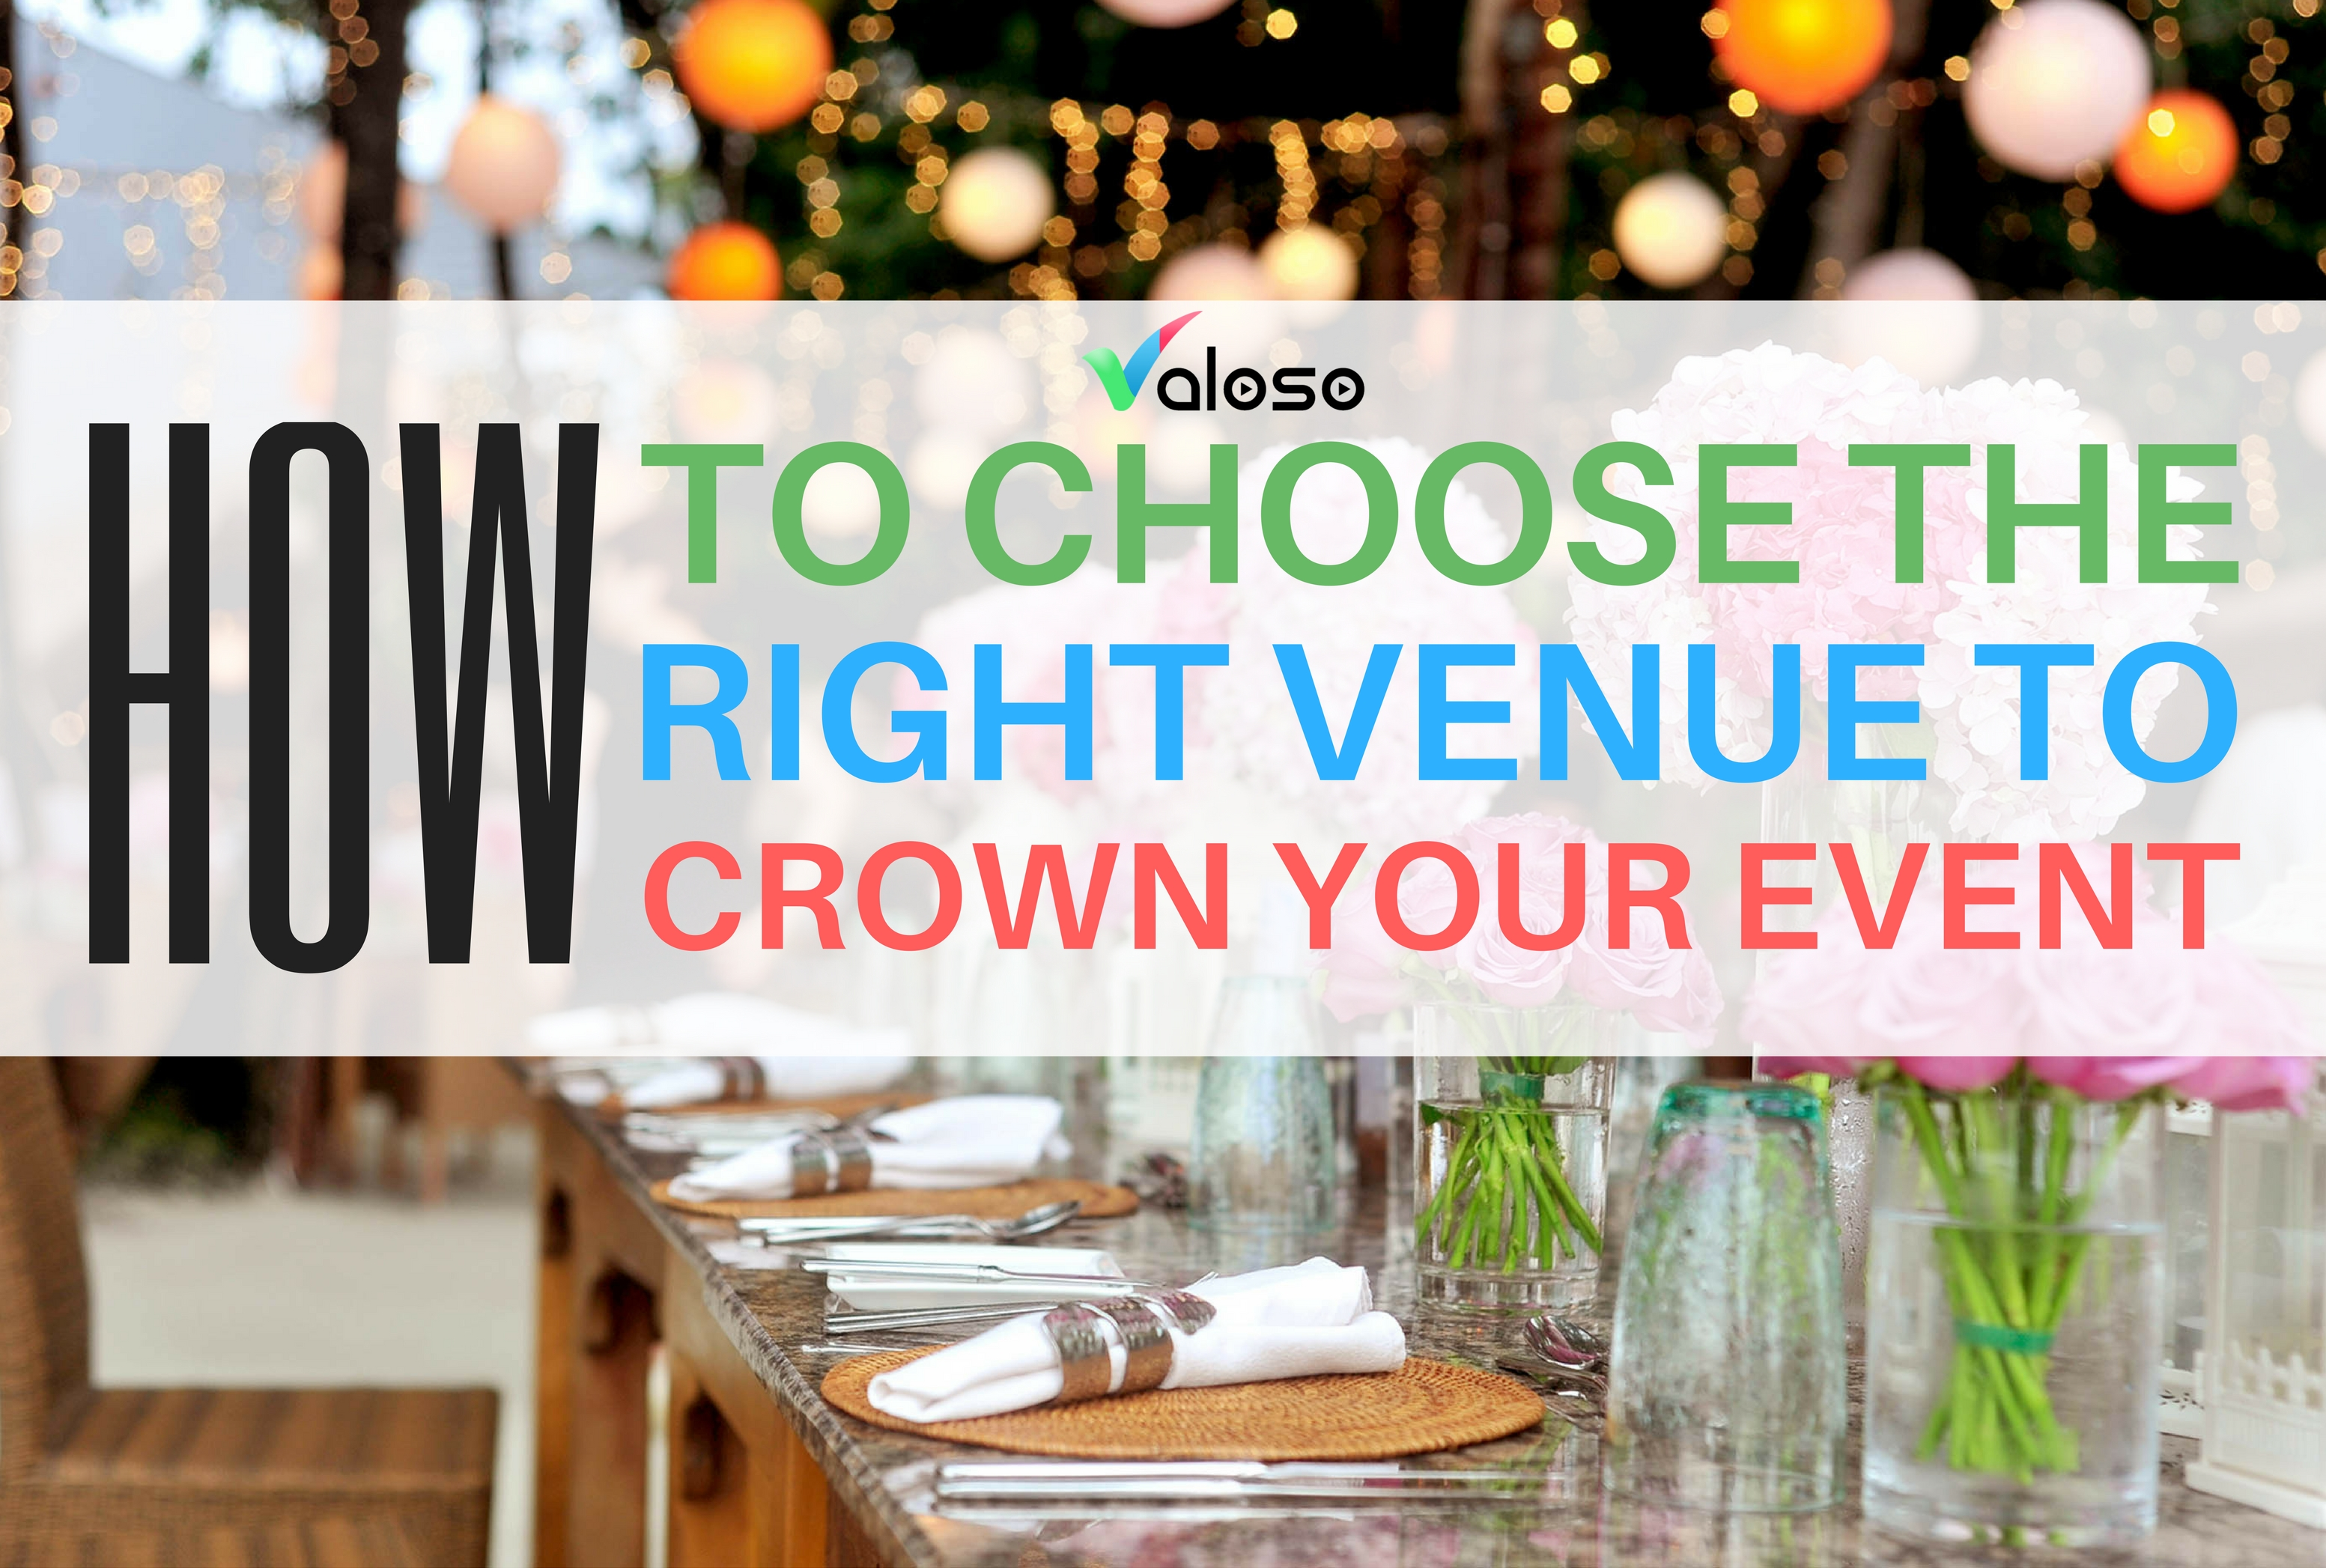 How To Choose A Venue To Crown Your Event - Valoso regarding Venue Stadium To Do Checklist Template